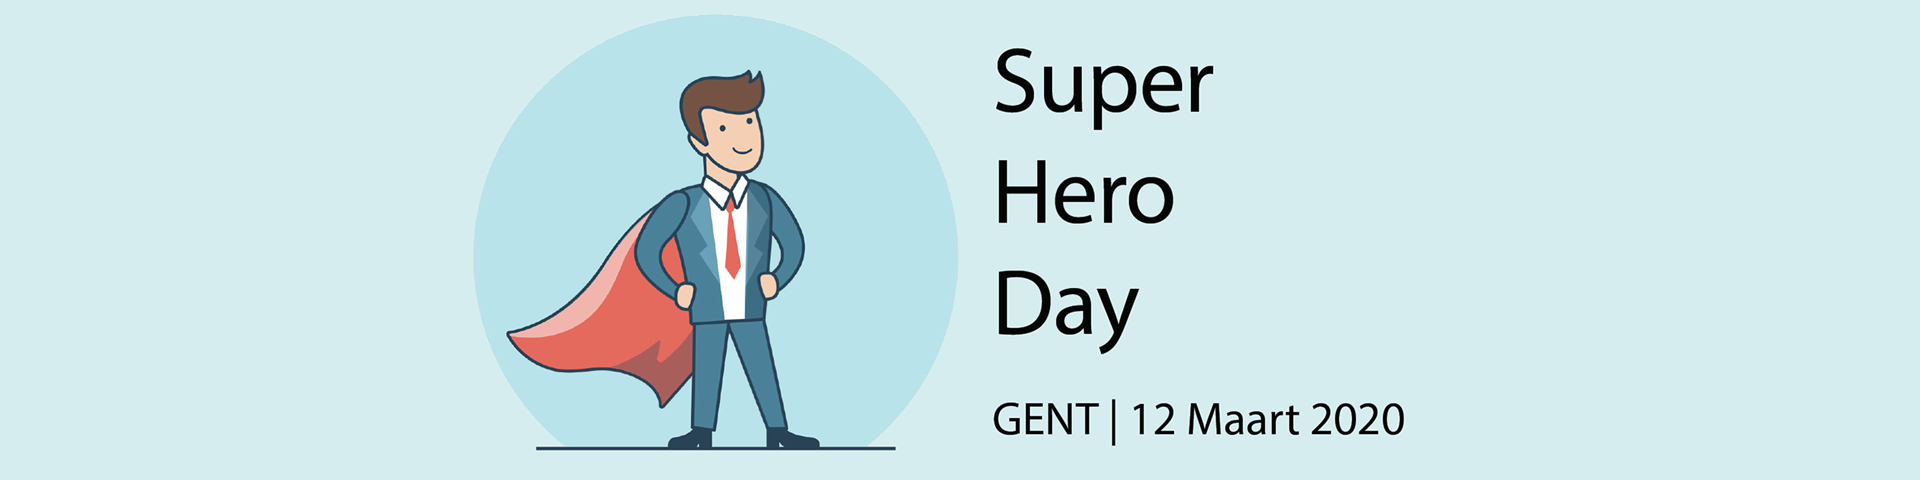 Intrum Super Hero Day 2020